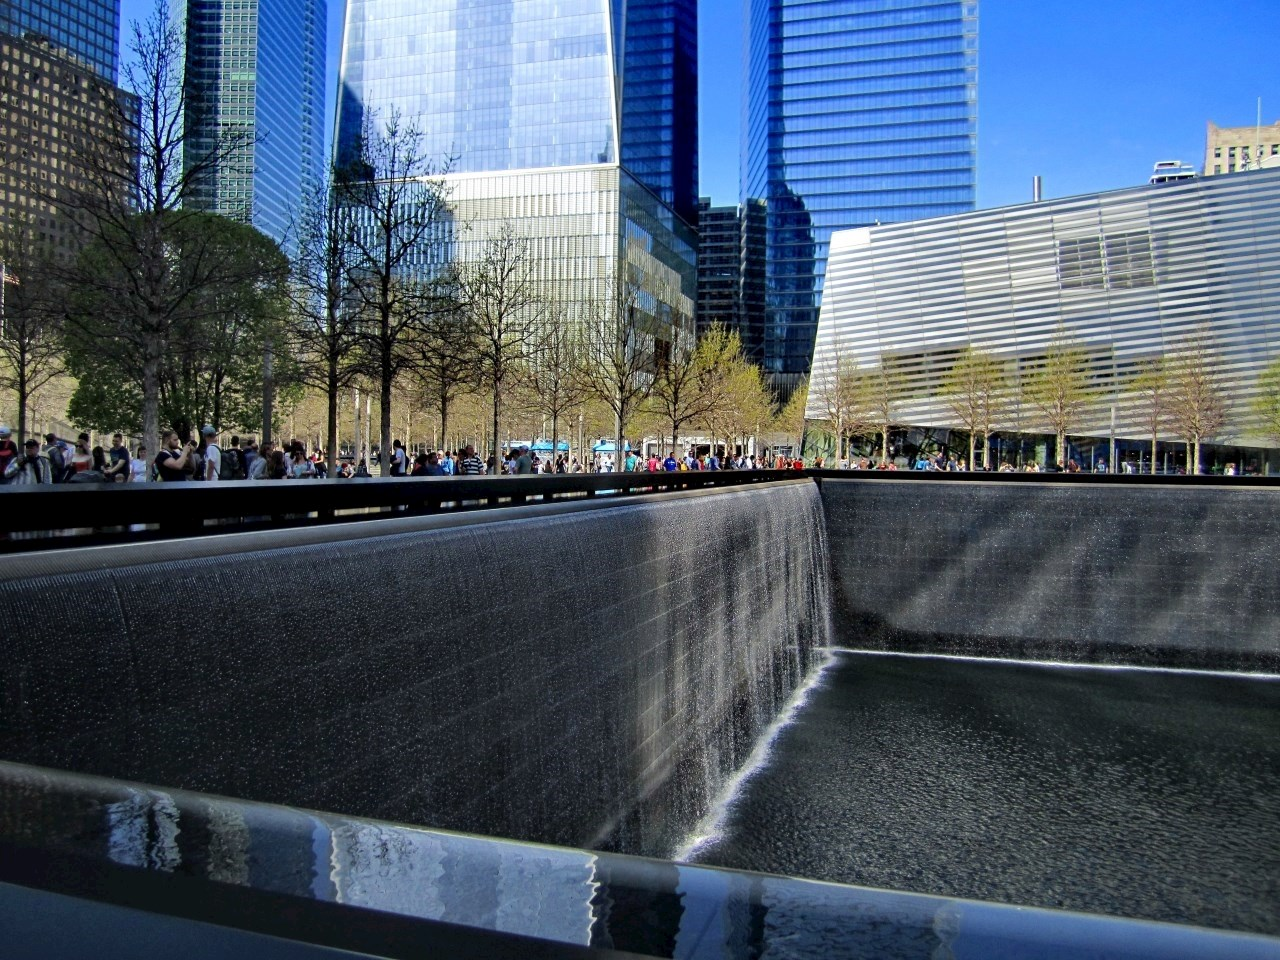 The National September 11 Memorial in New York City